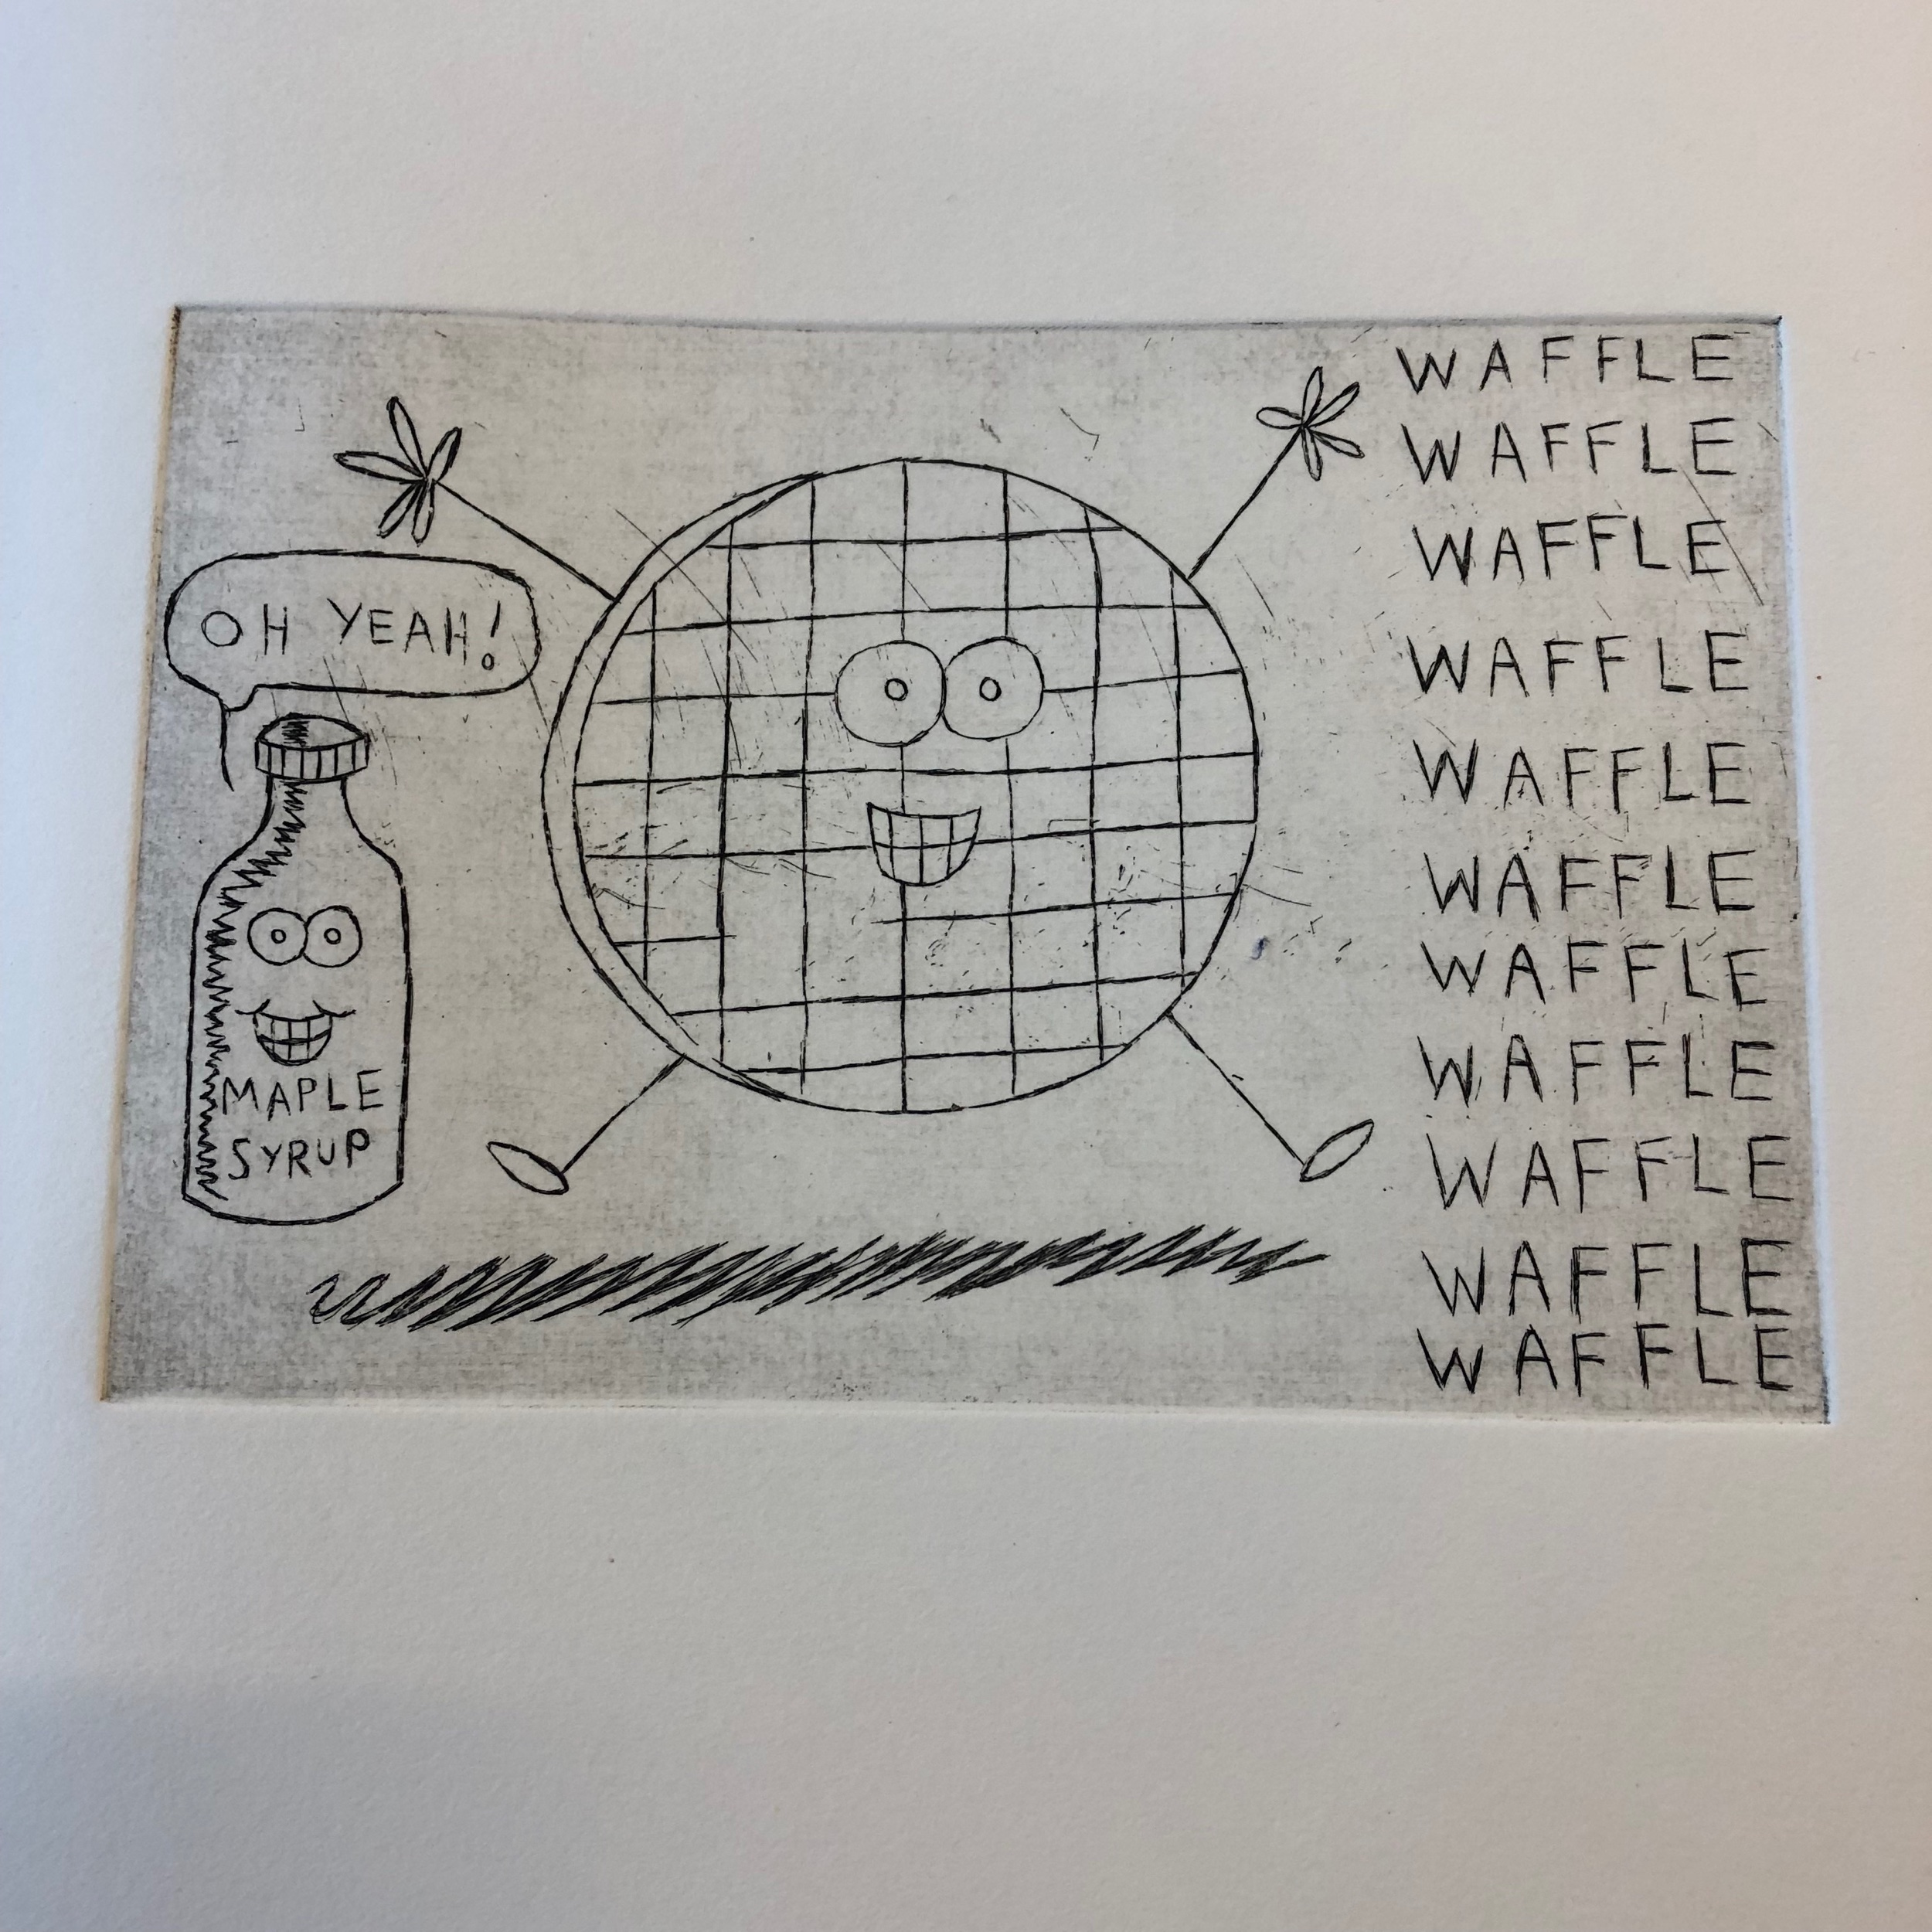 Waffle print - 1st state. I missed a line so I went back with some hard ground and added some more linework to it.